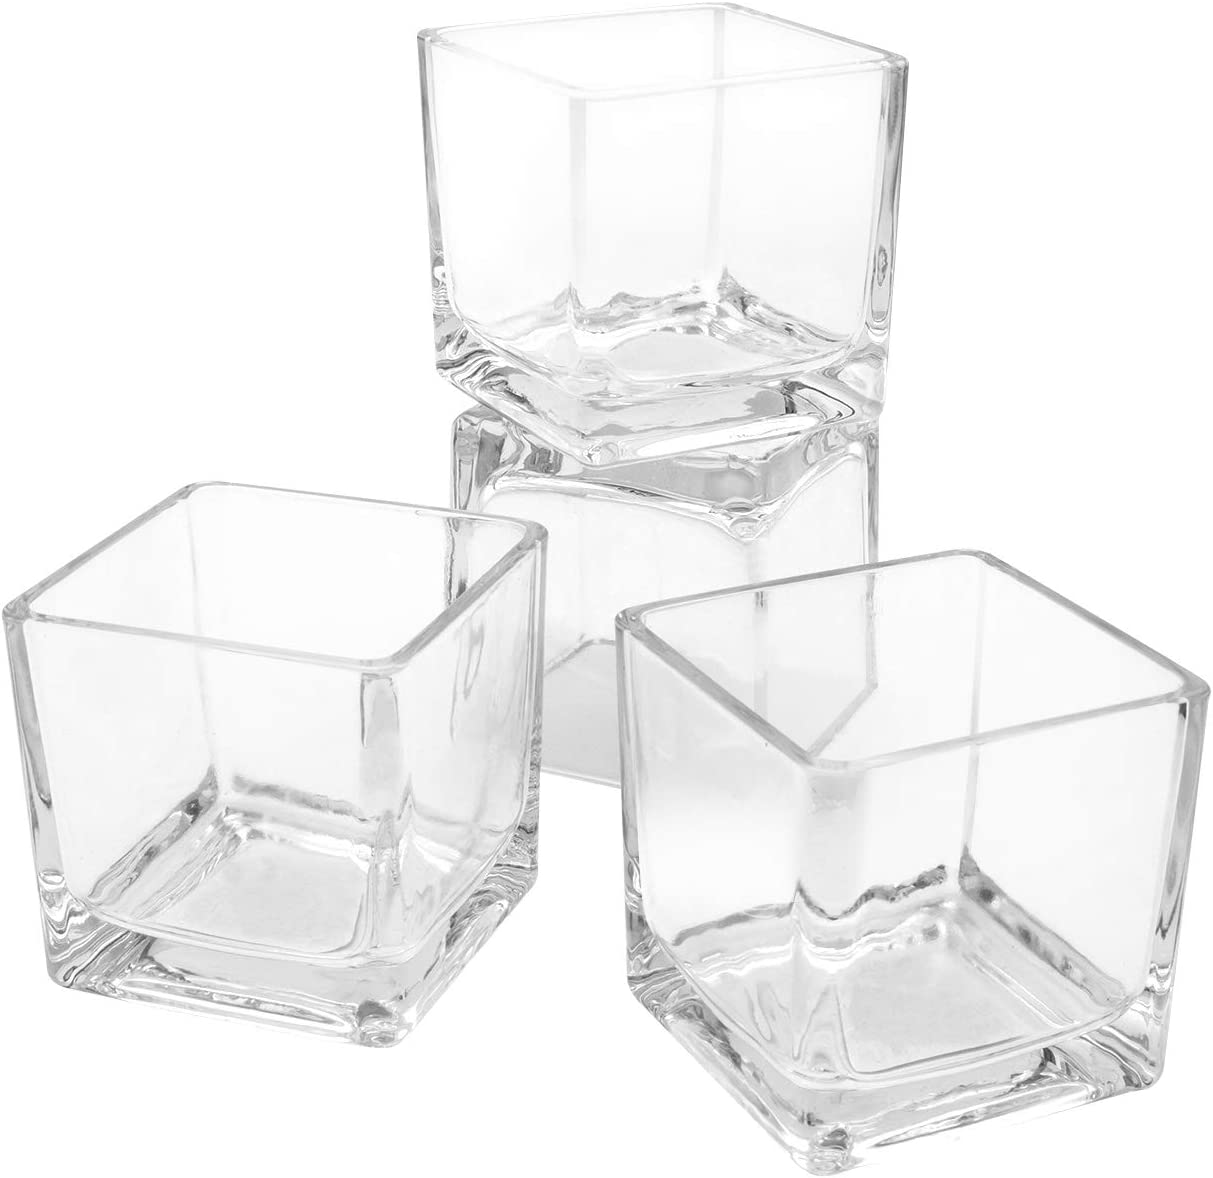 Flower Glass Vase Decorative Centerpiece for Home or Wedding by Royal Imports - Clear Cube Shape, 2.5